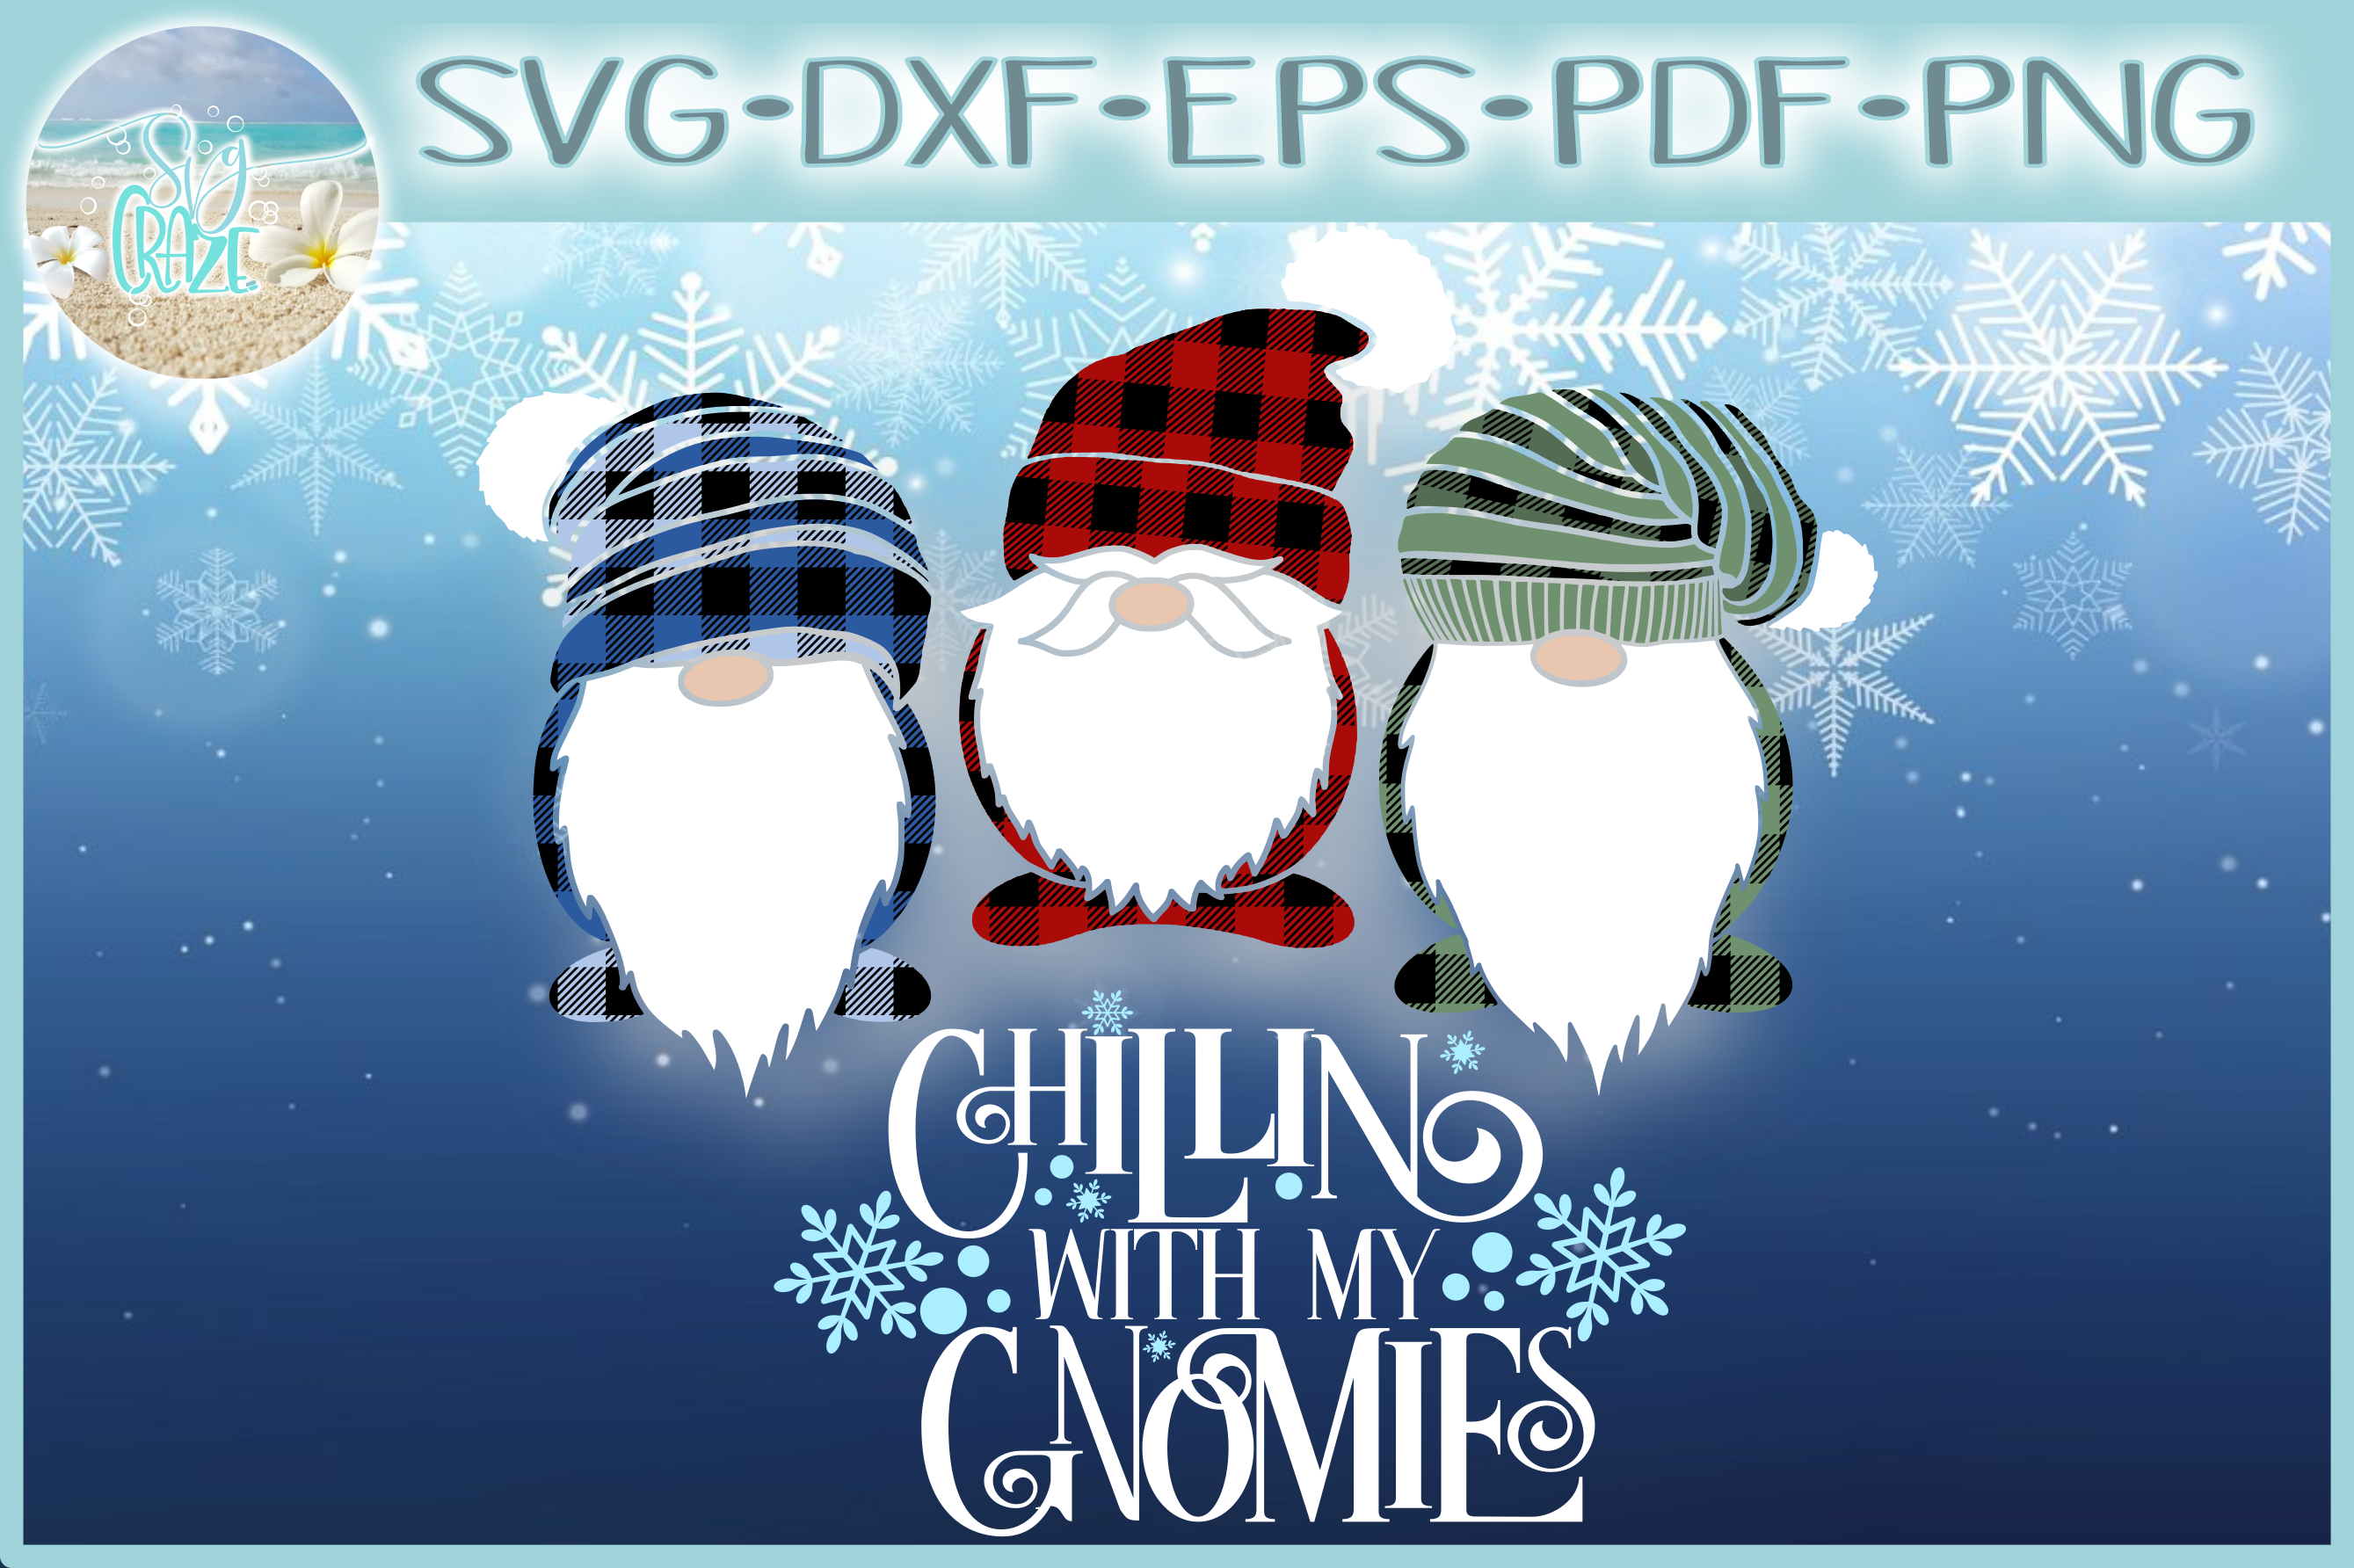 Chillin With My Gnomies Quote with Gnomes SVG example image 1